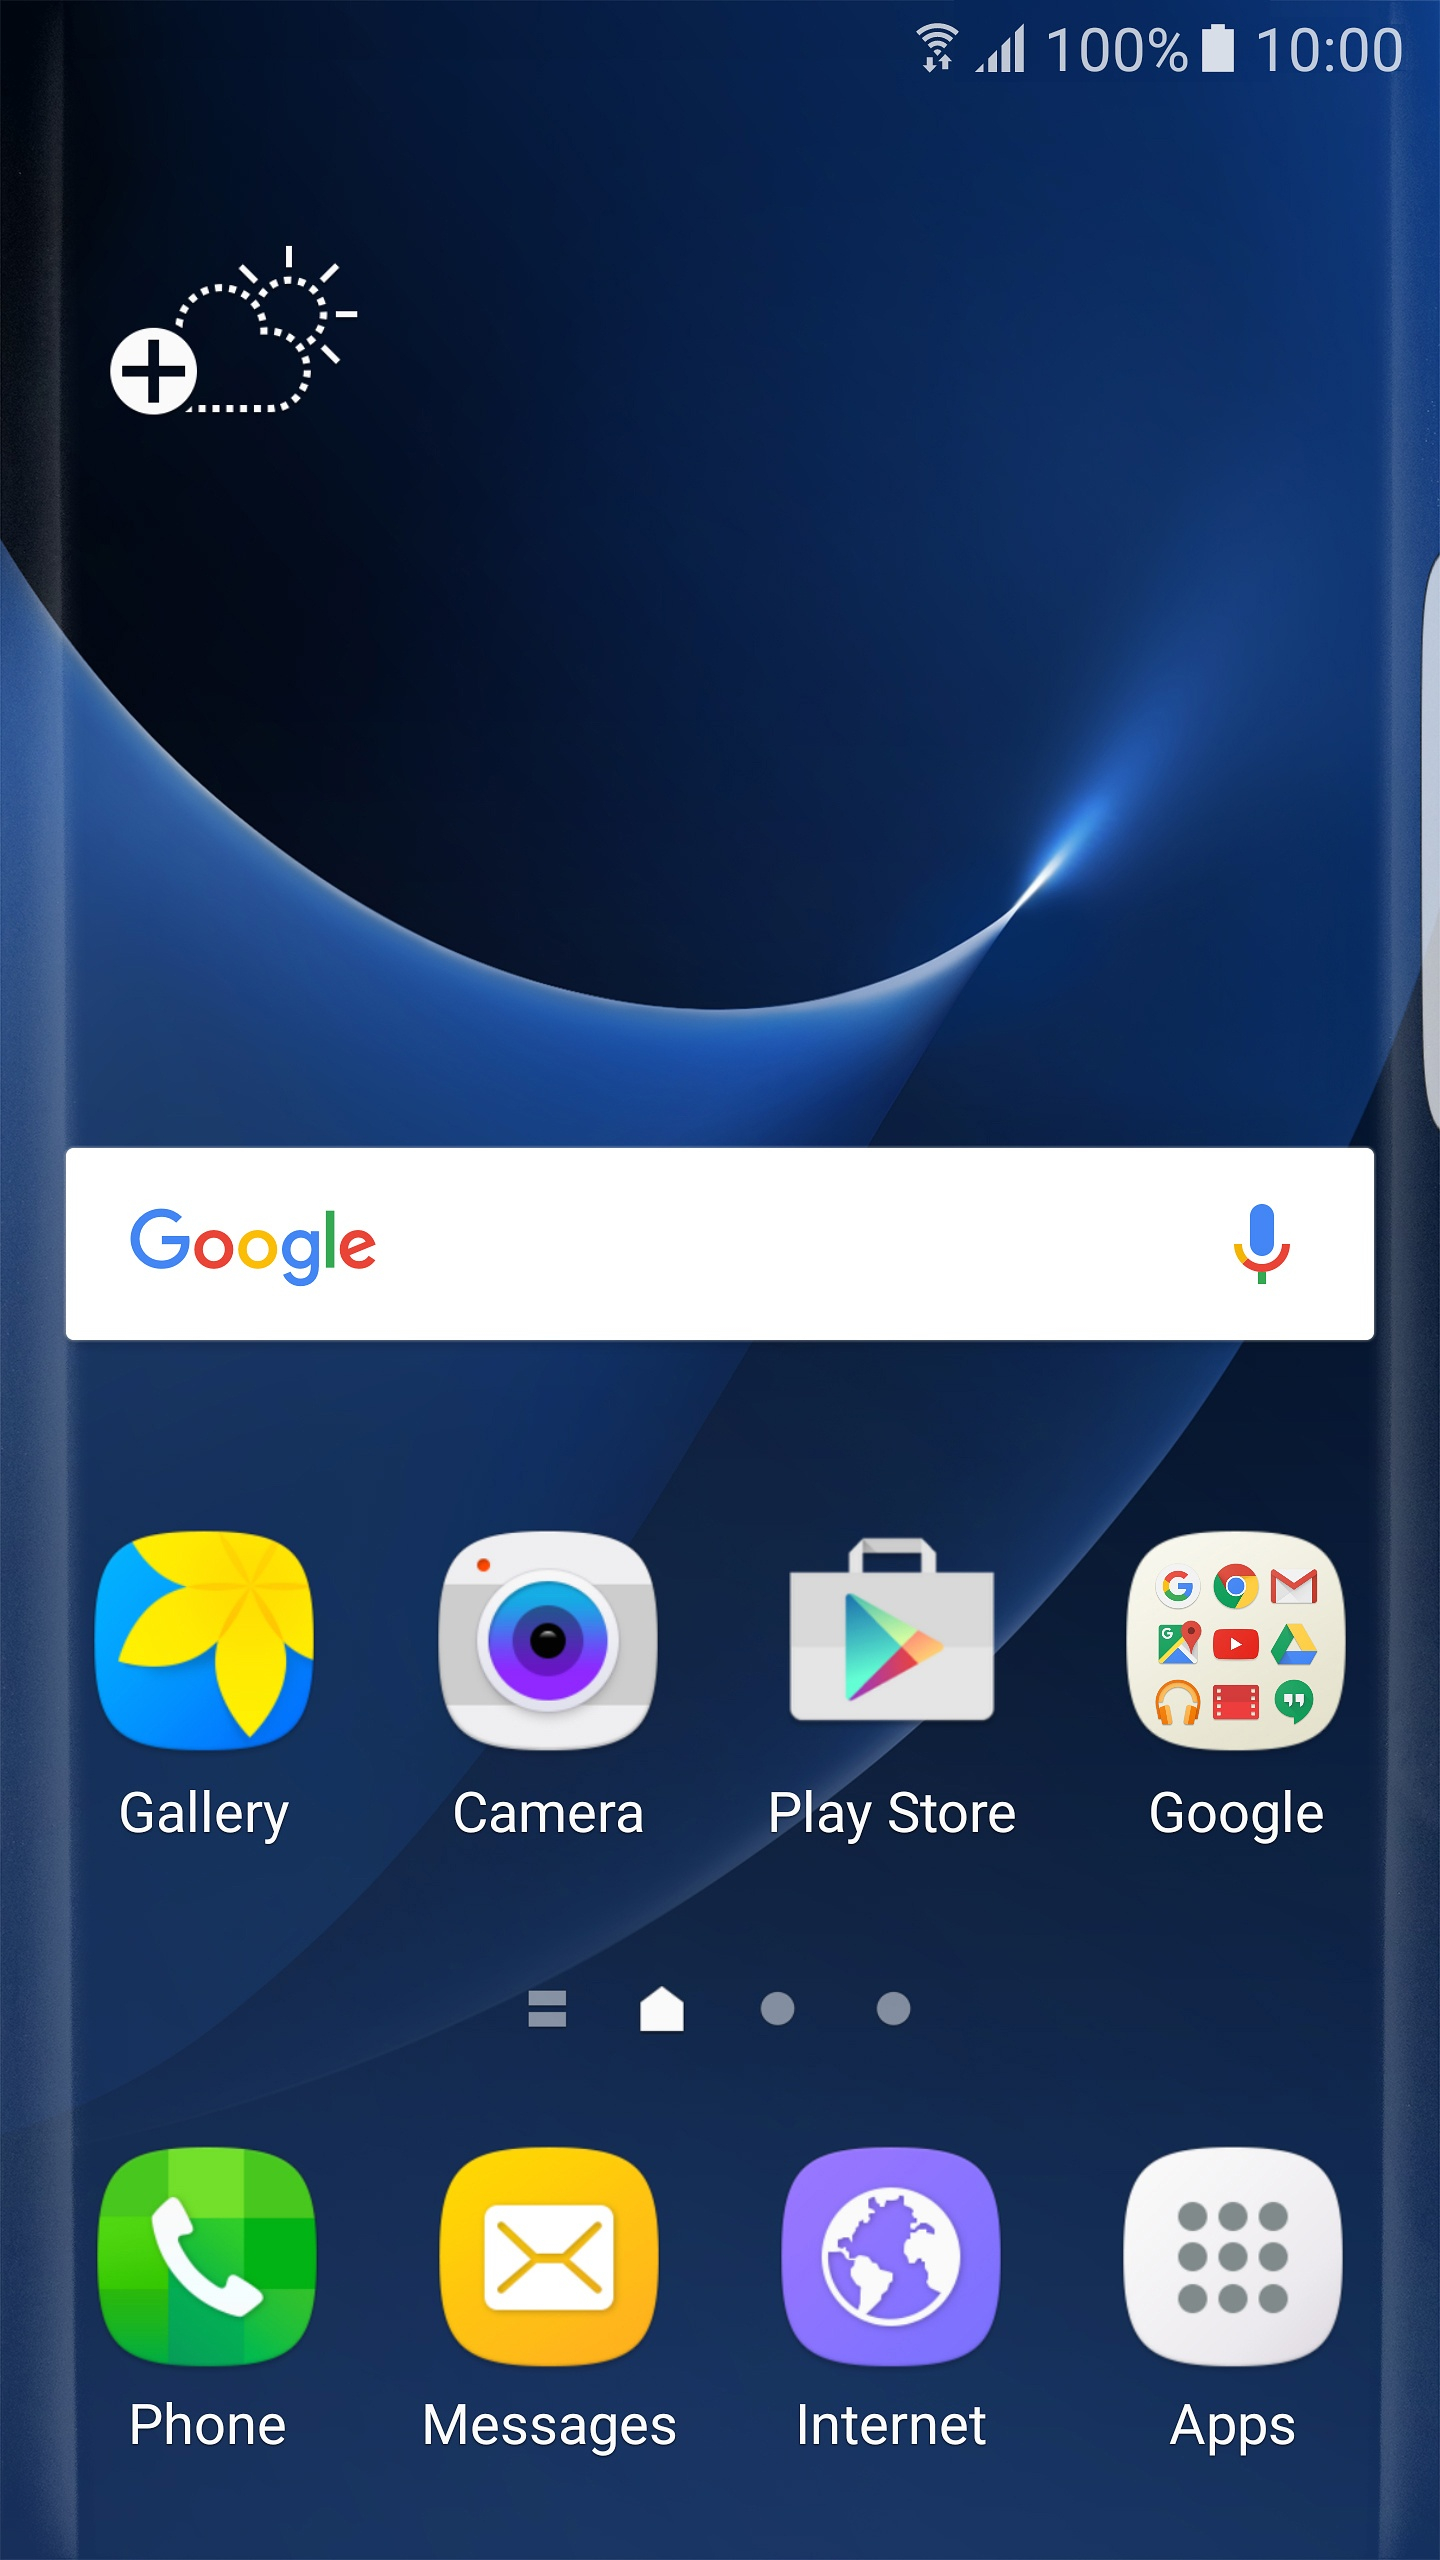 List of screen icons samsung galaxy s7 edge android 60 telstra 14 of 14 steps the wi fi icon shows that your phone is connected to a wi fi network biocorpaavc Images